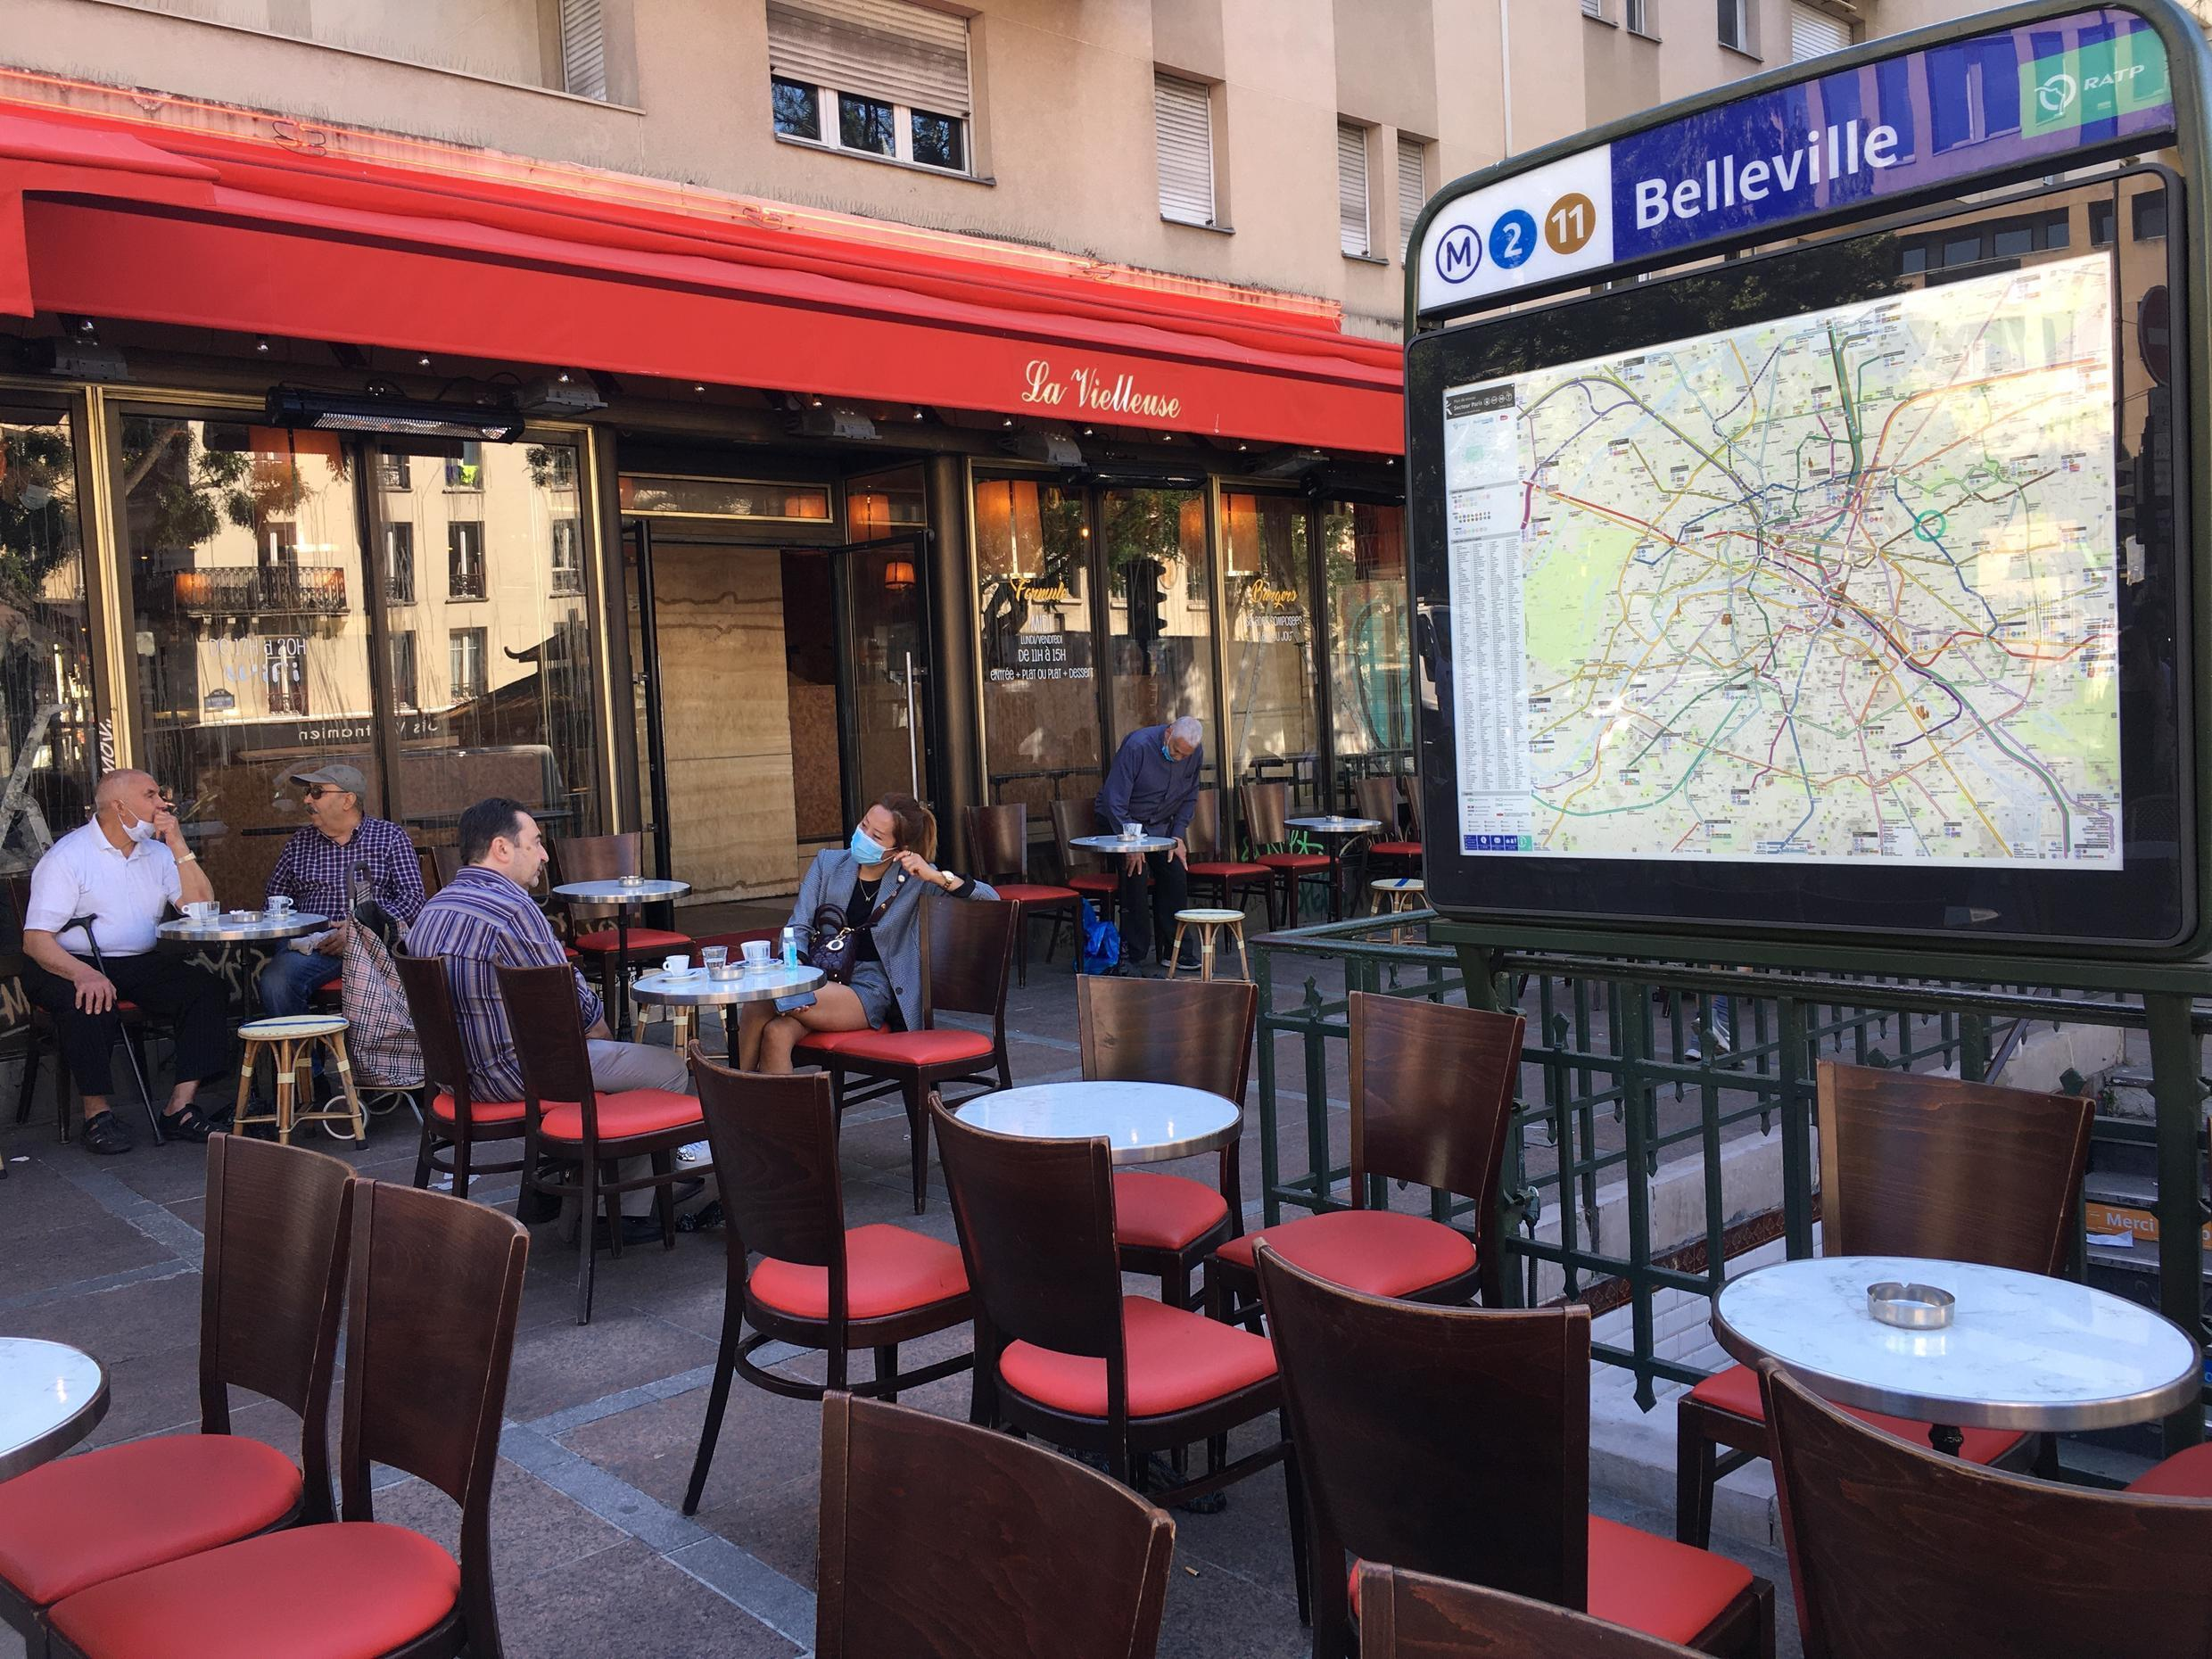 Paris' cafés, bars and restaurants reopen after two and a half months with their doors closed due to the Covid-19 lockdown, Belleville, Paris, 2 June 2020.